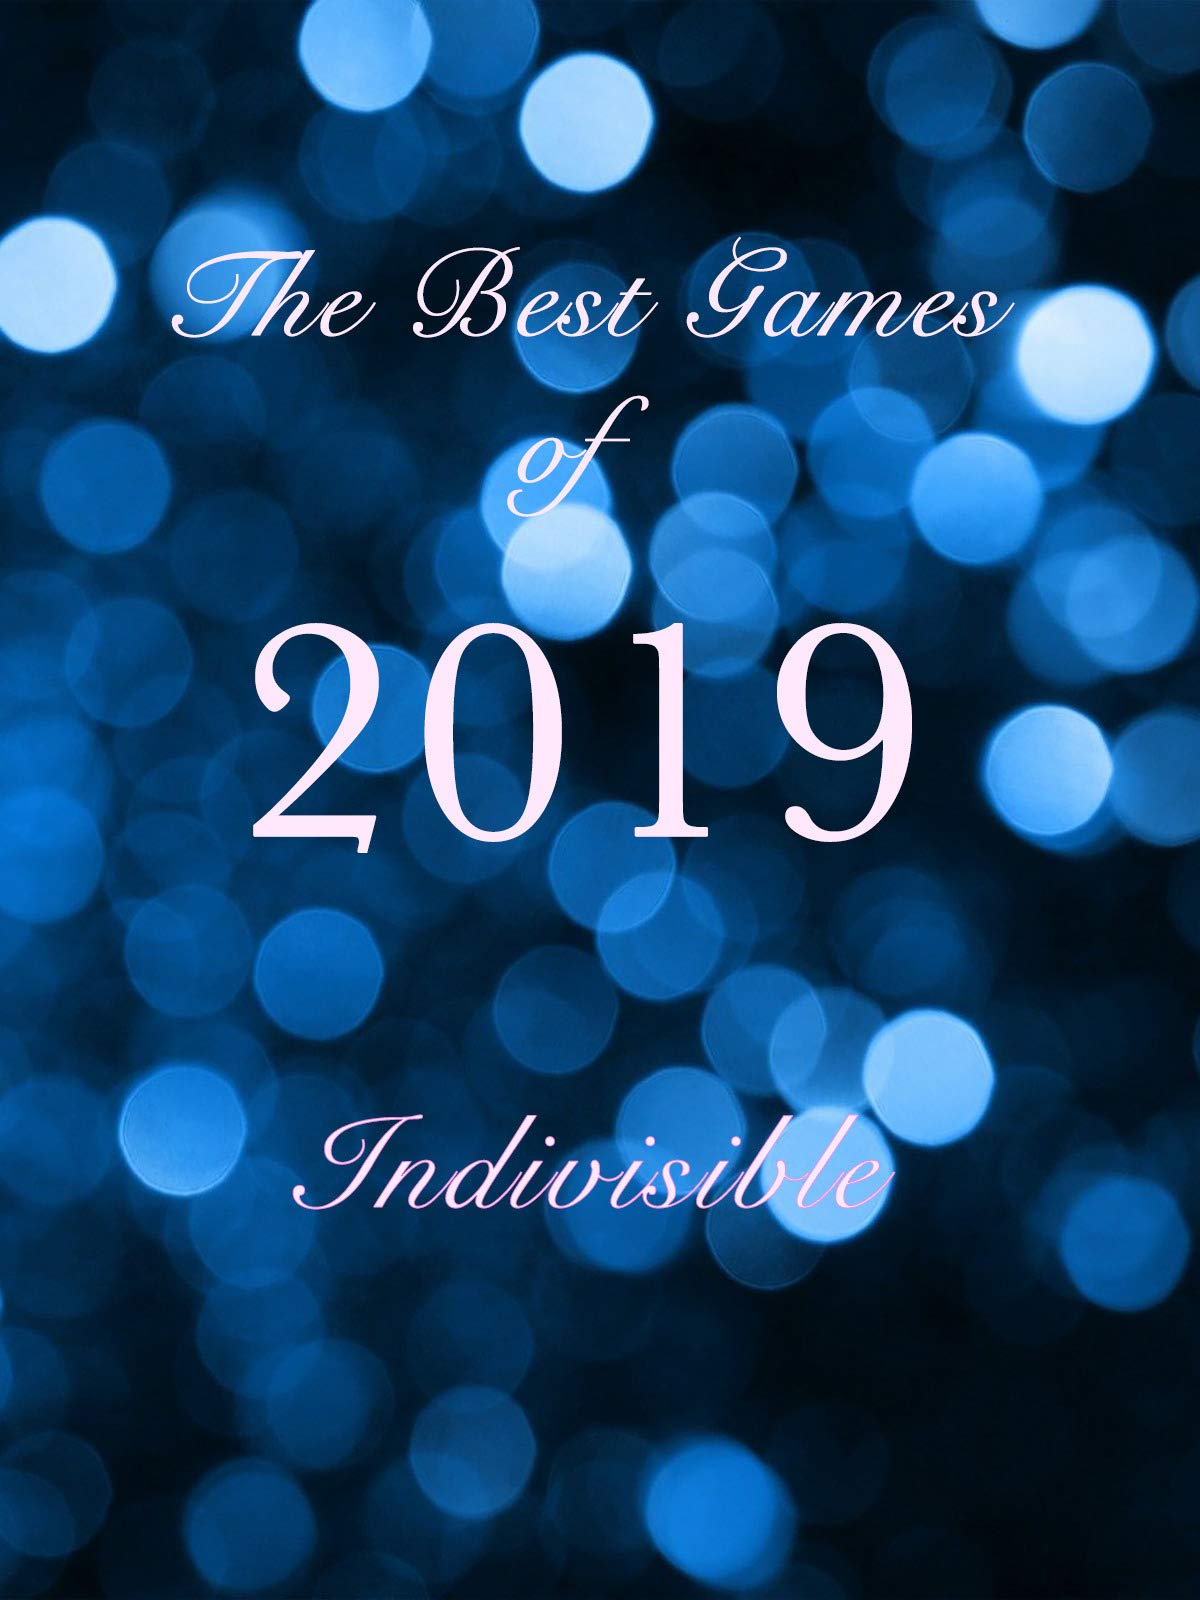 The Best Games of 2019 Indivisible